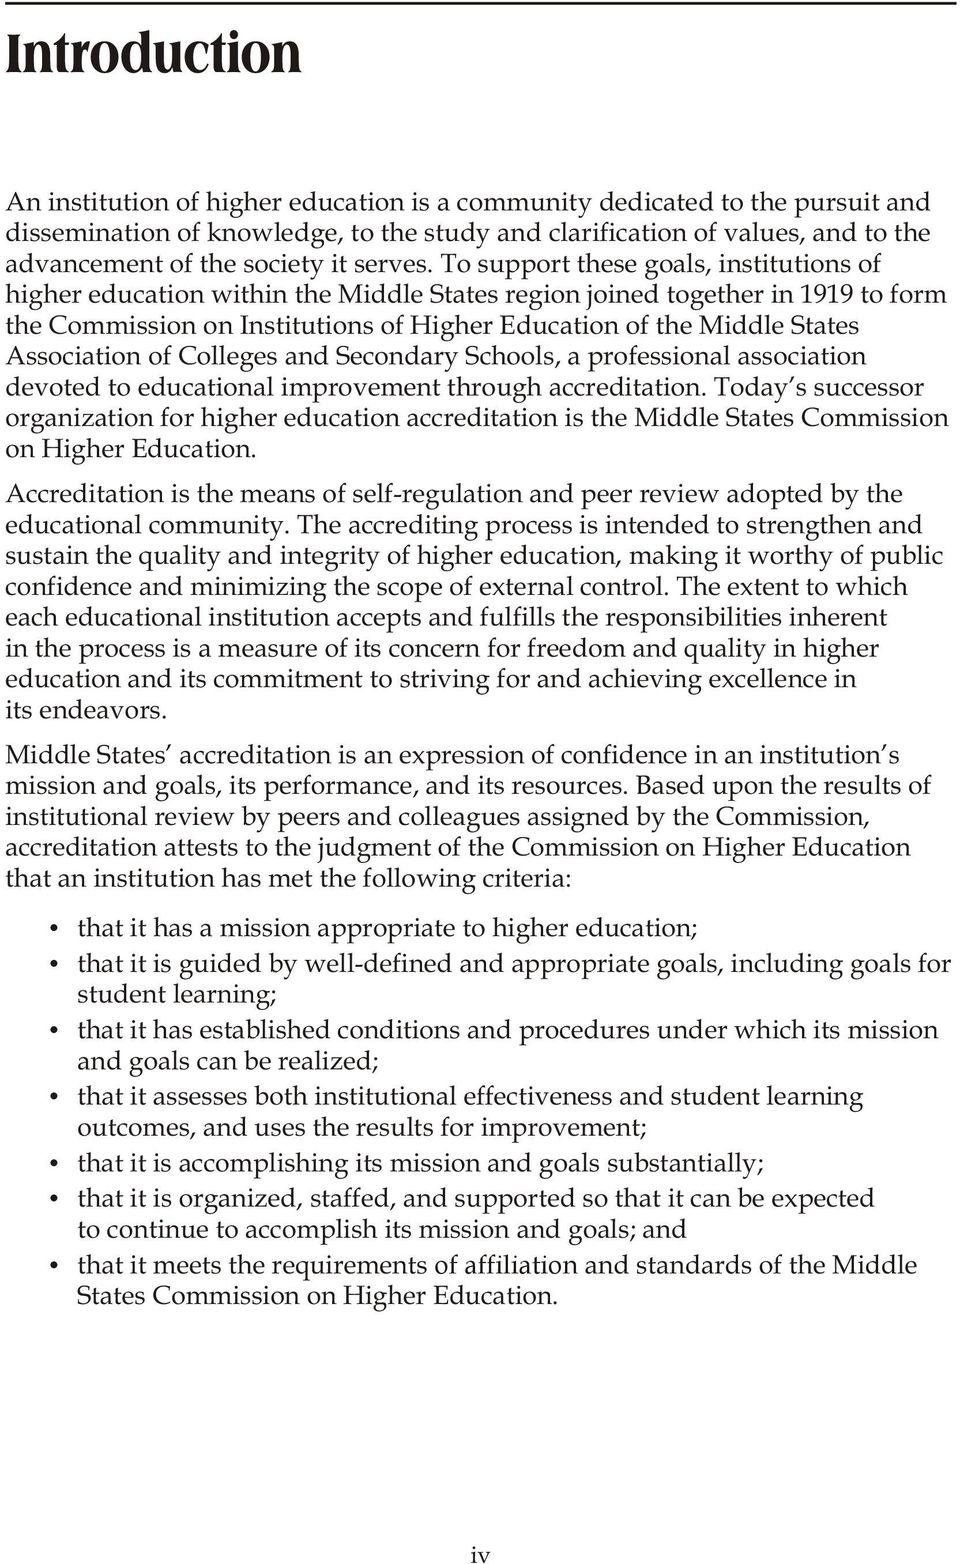 To support these goals, institutions of higher education within the Middle States region joined together in 1919 to form the Commission on Institutions of Higher Education of the Middle States